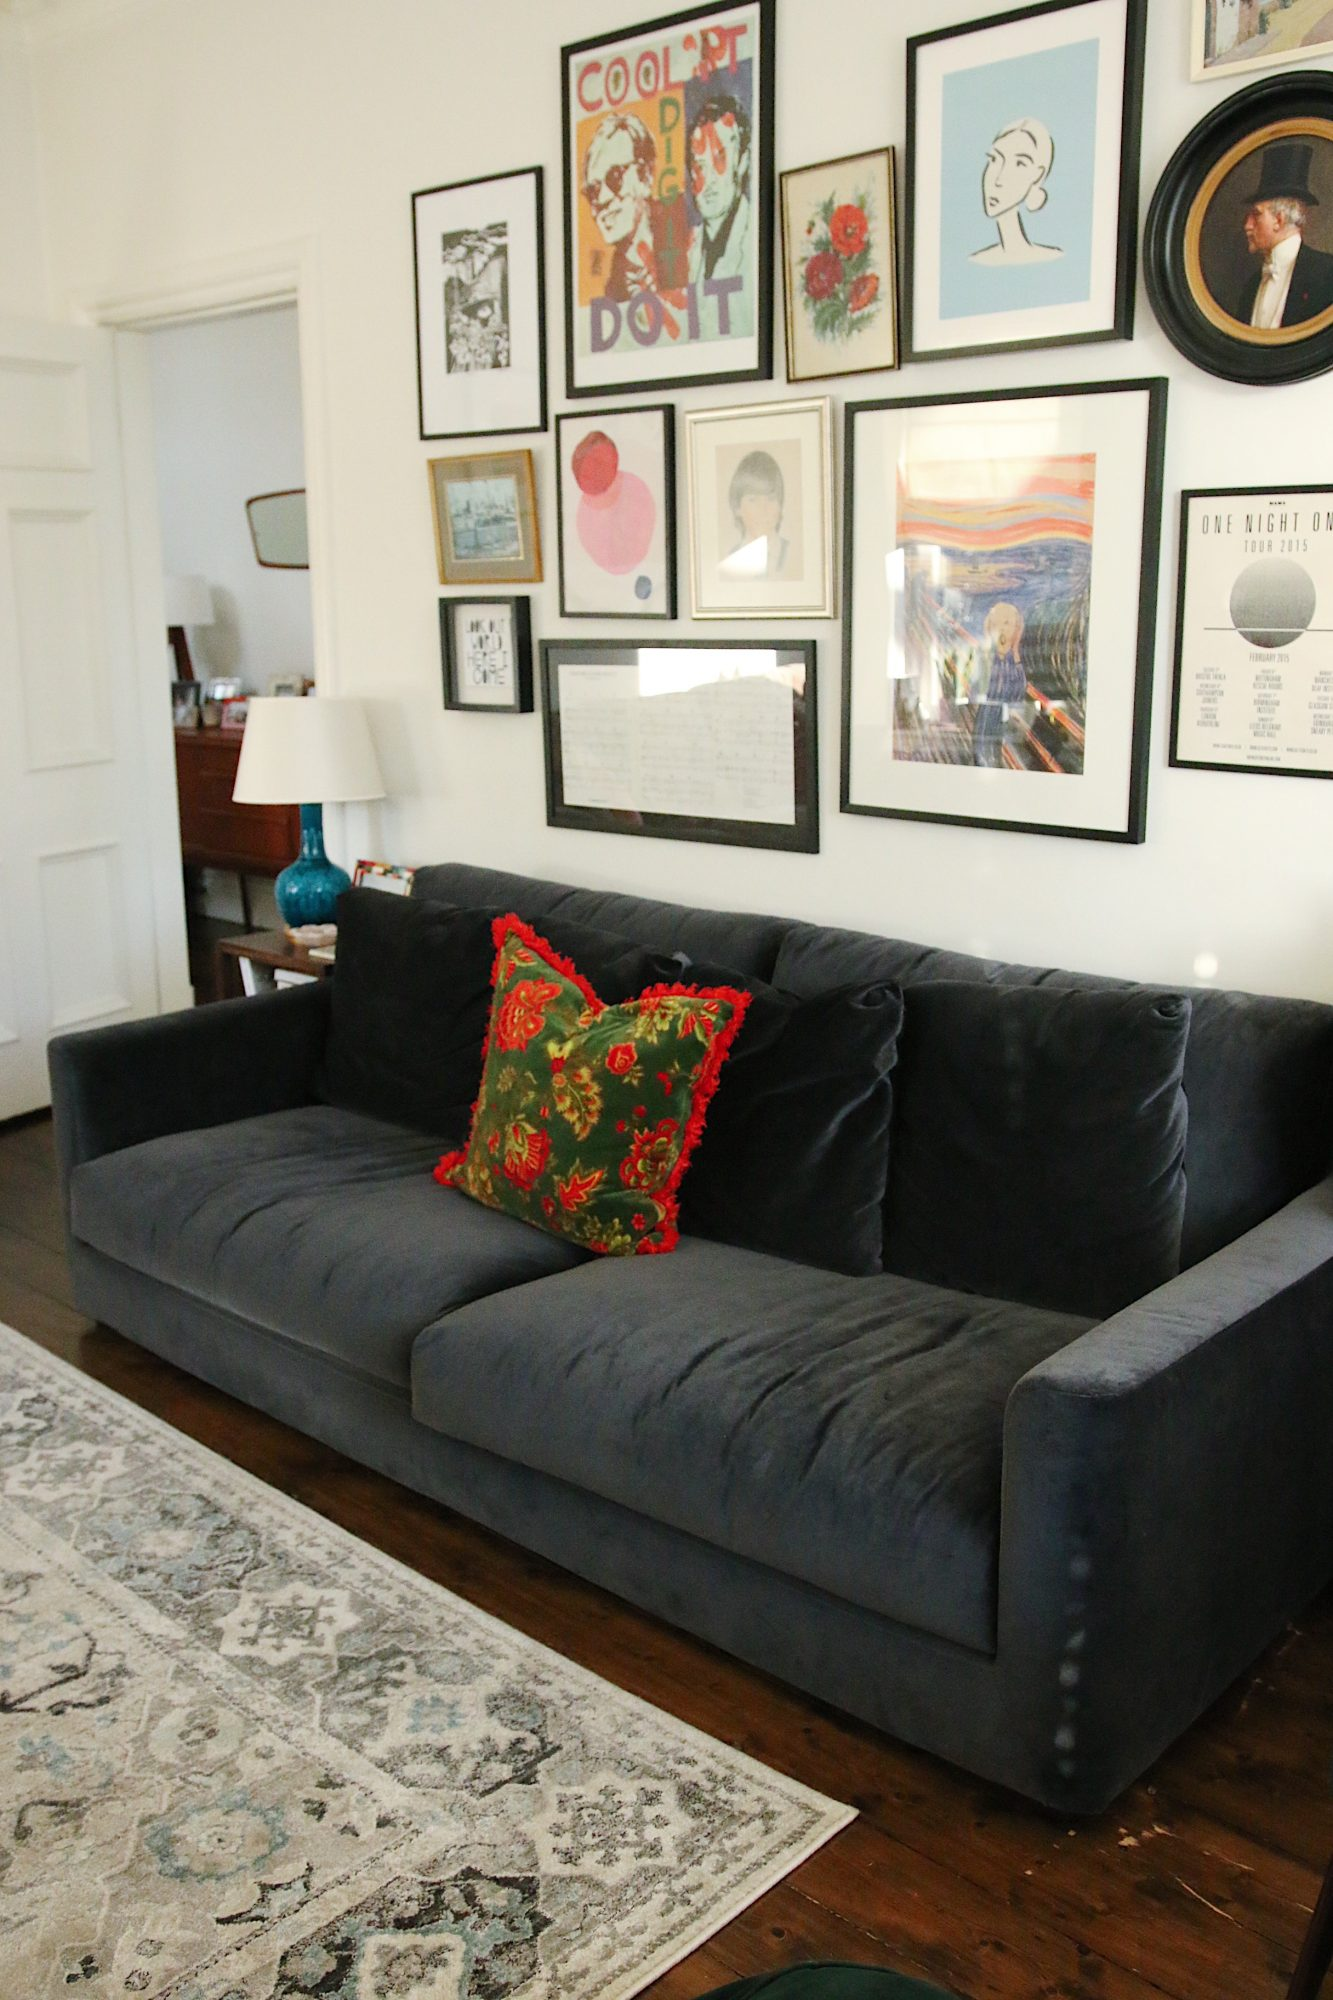 HABITAT RUPERT SOFA IN MEGAN ELLABY'S HOME